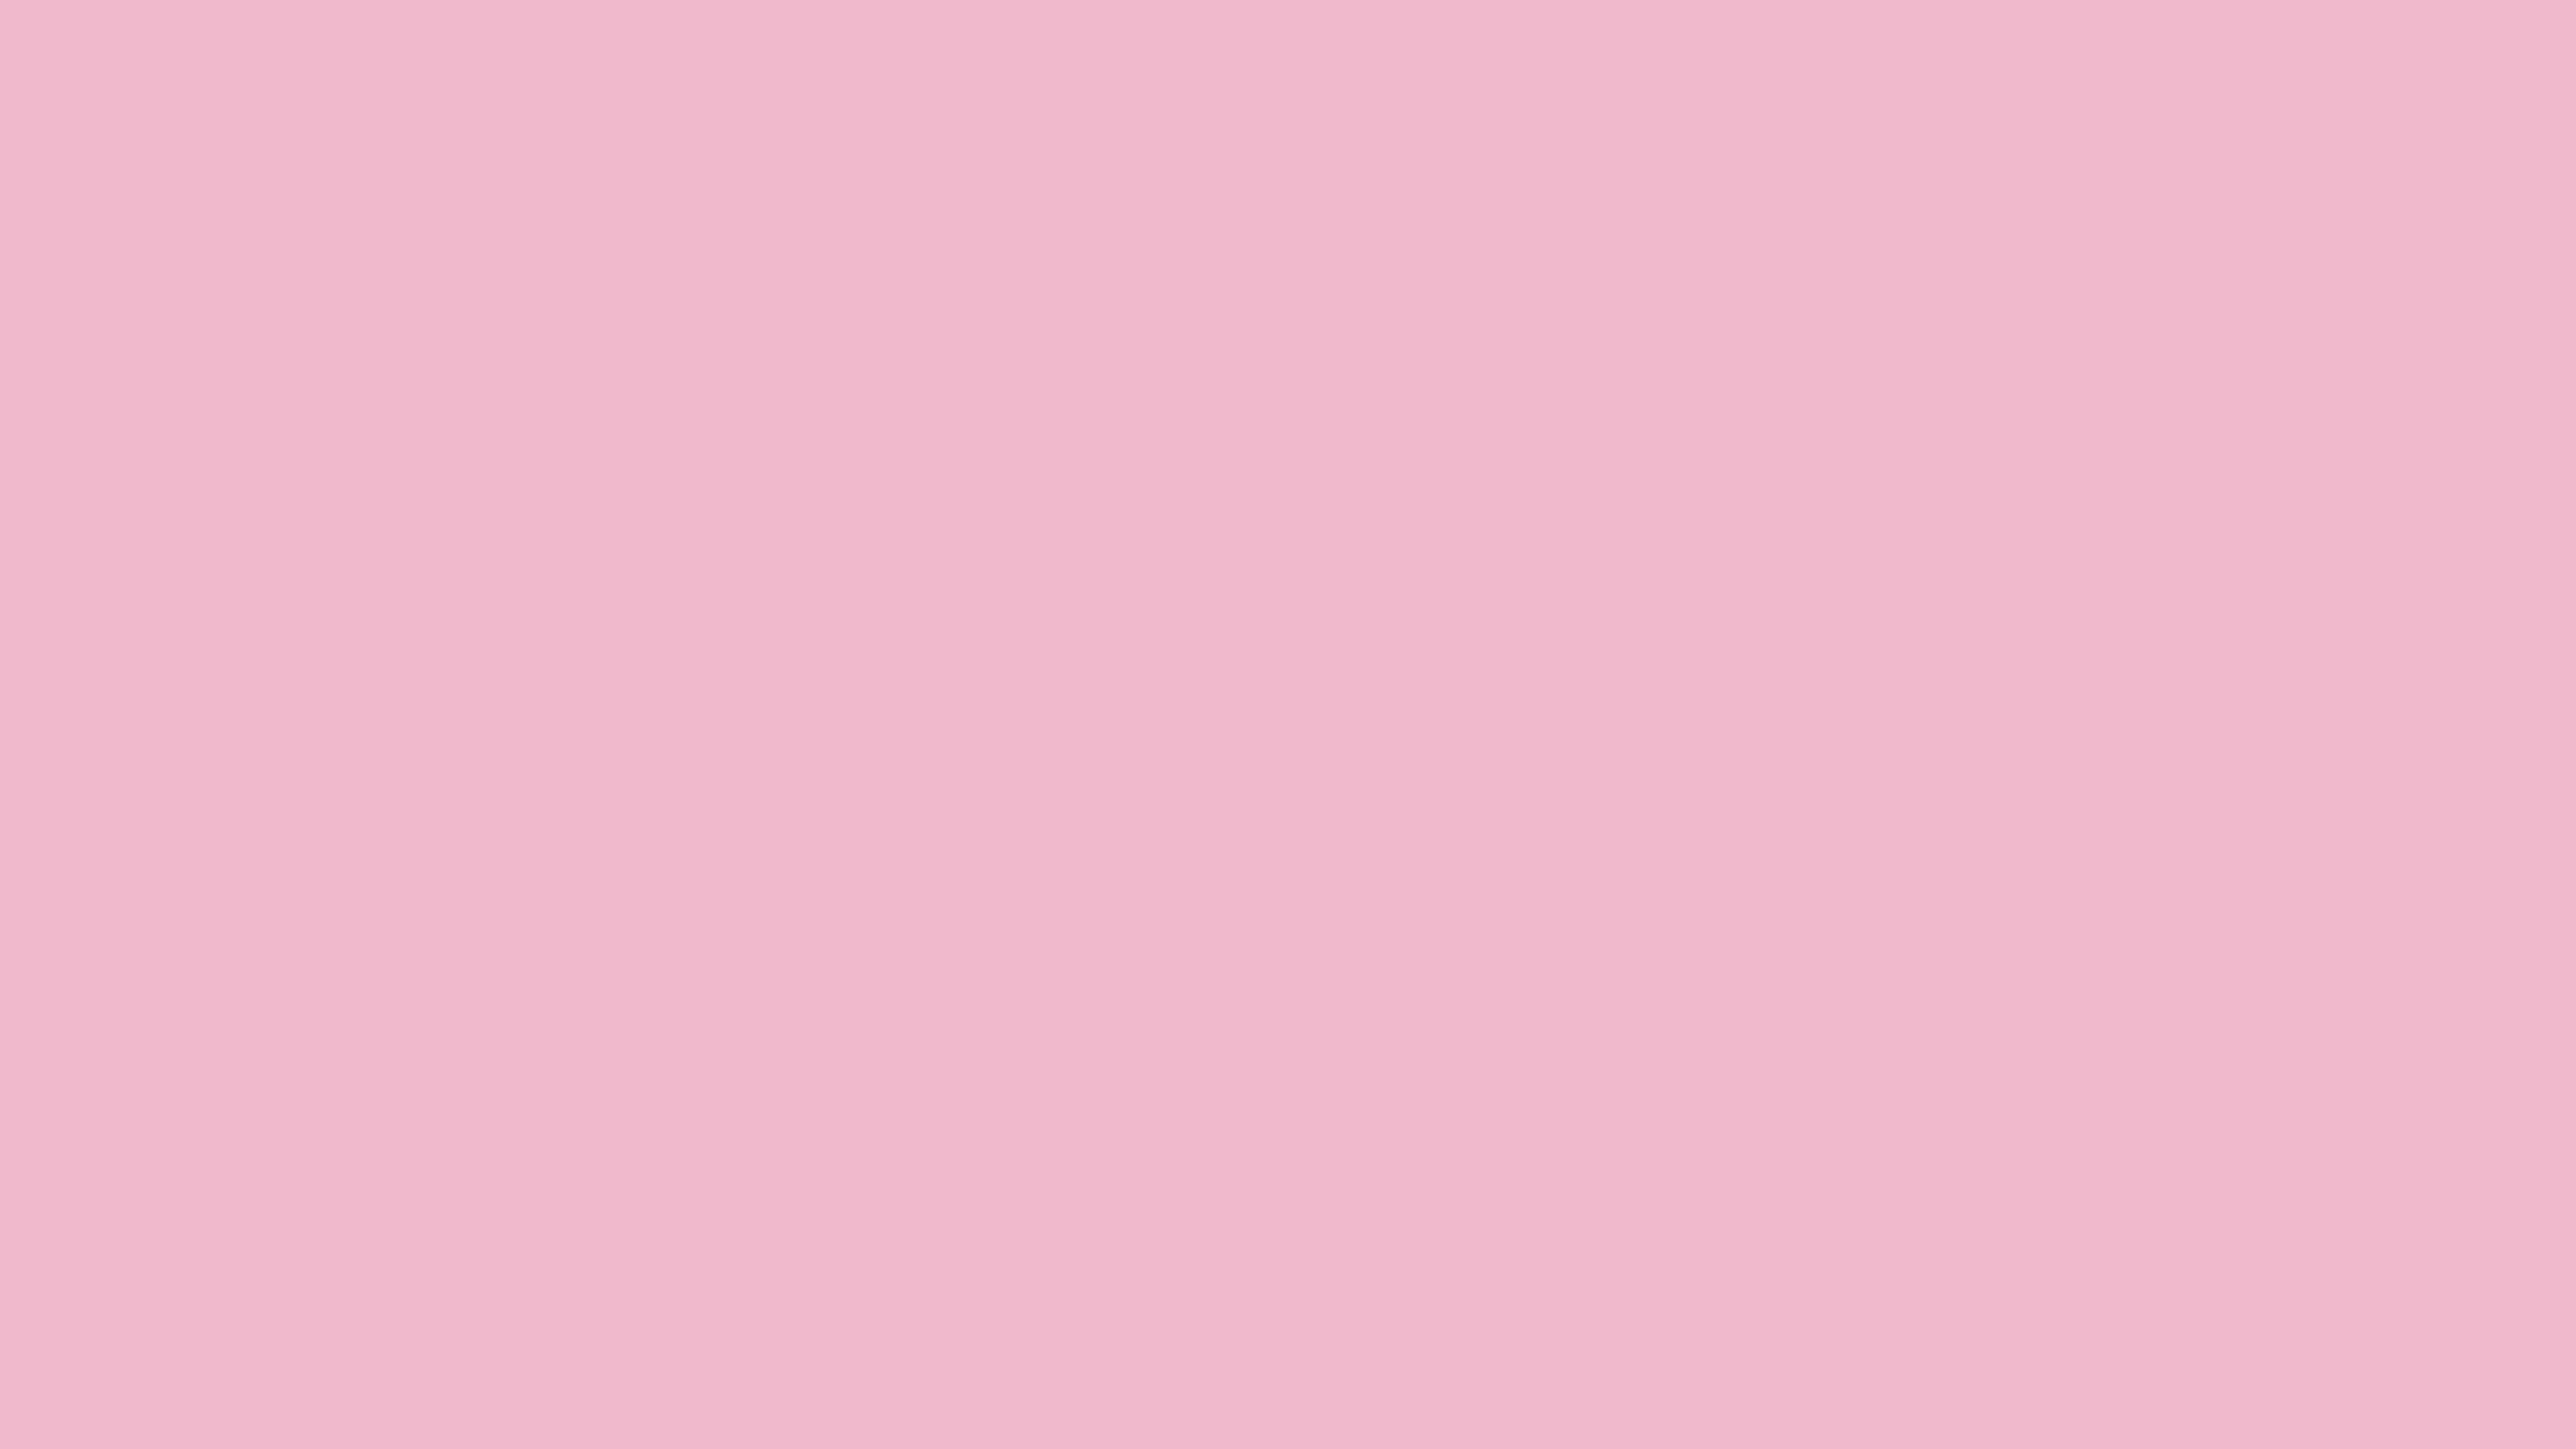 4096x2304 Cameo Pink Solid Color Background